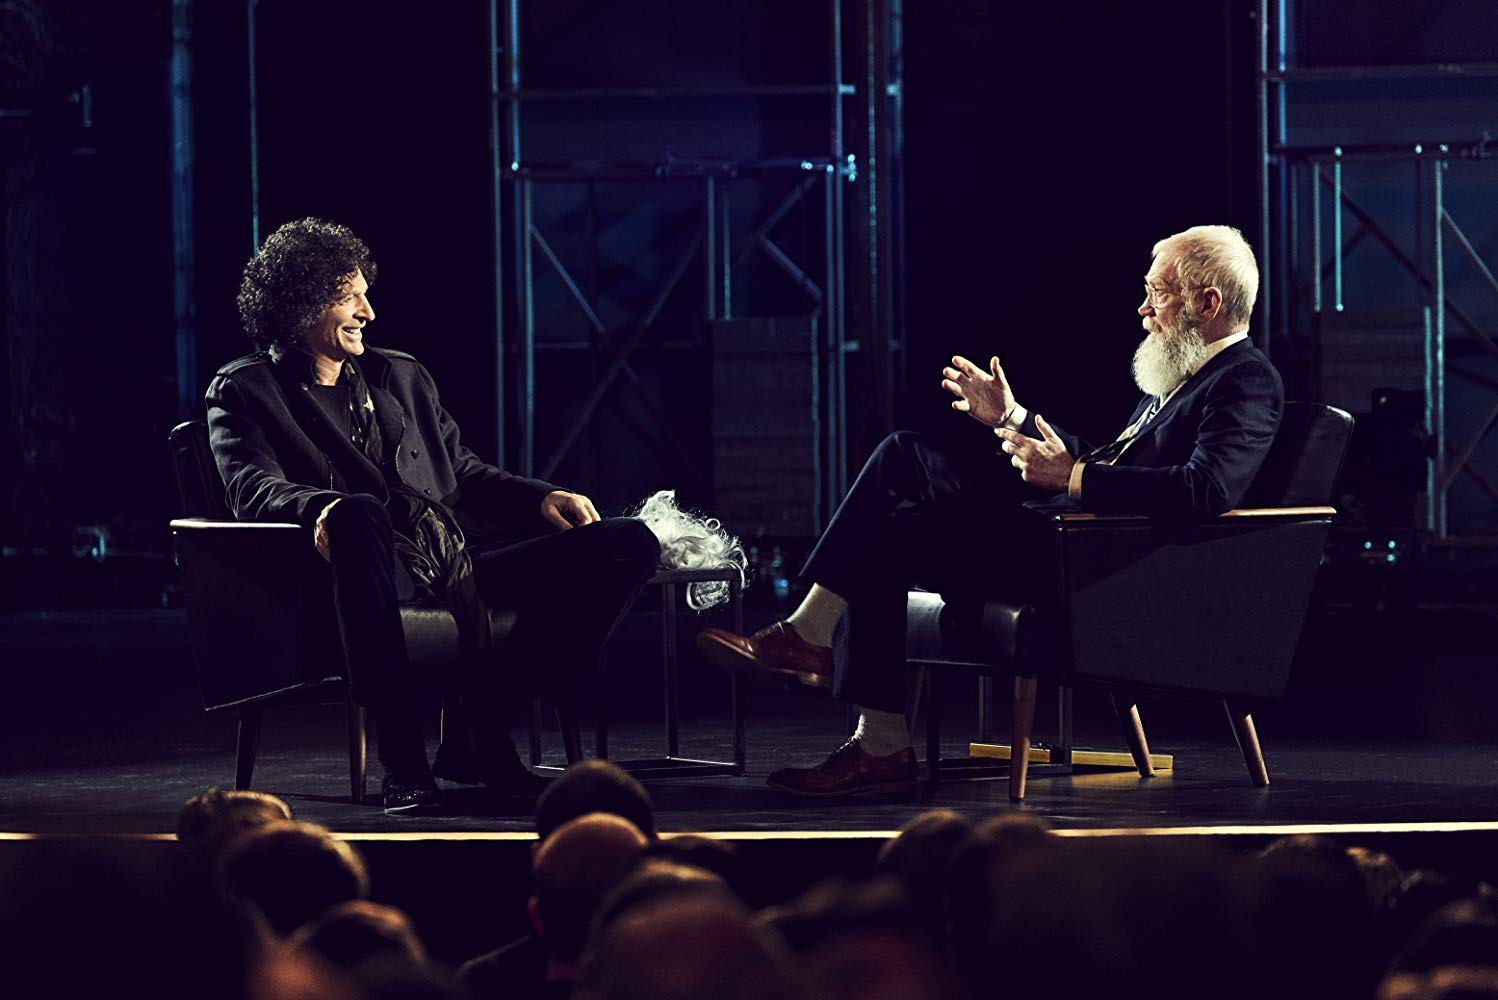 My Next Guest Needs No Introduction with David Letterman - Season 2